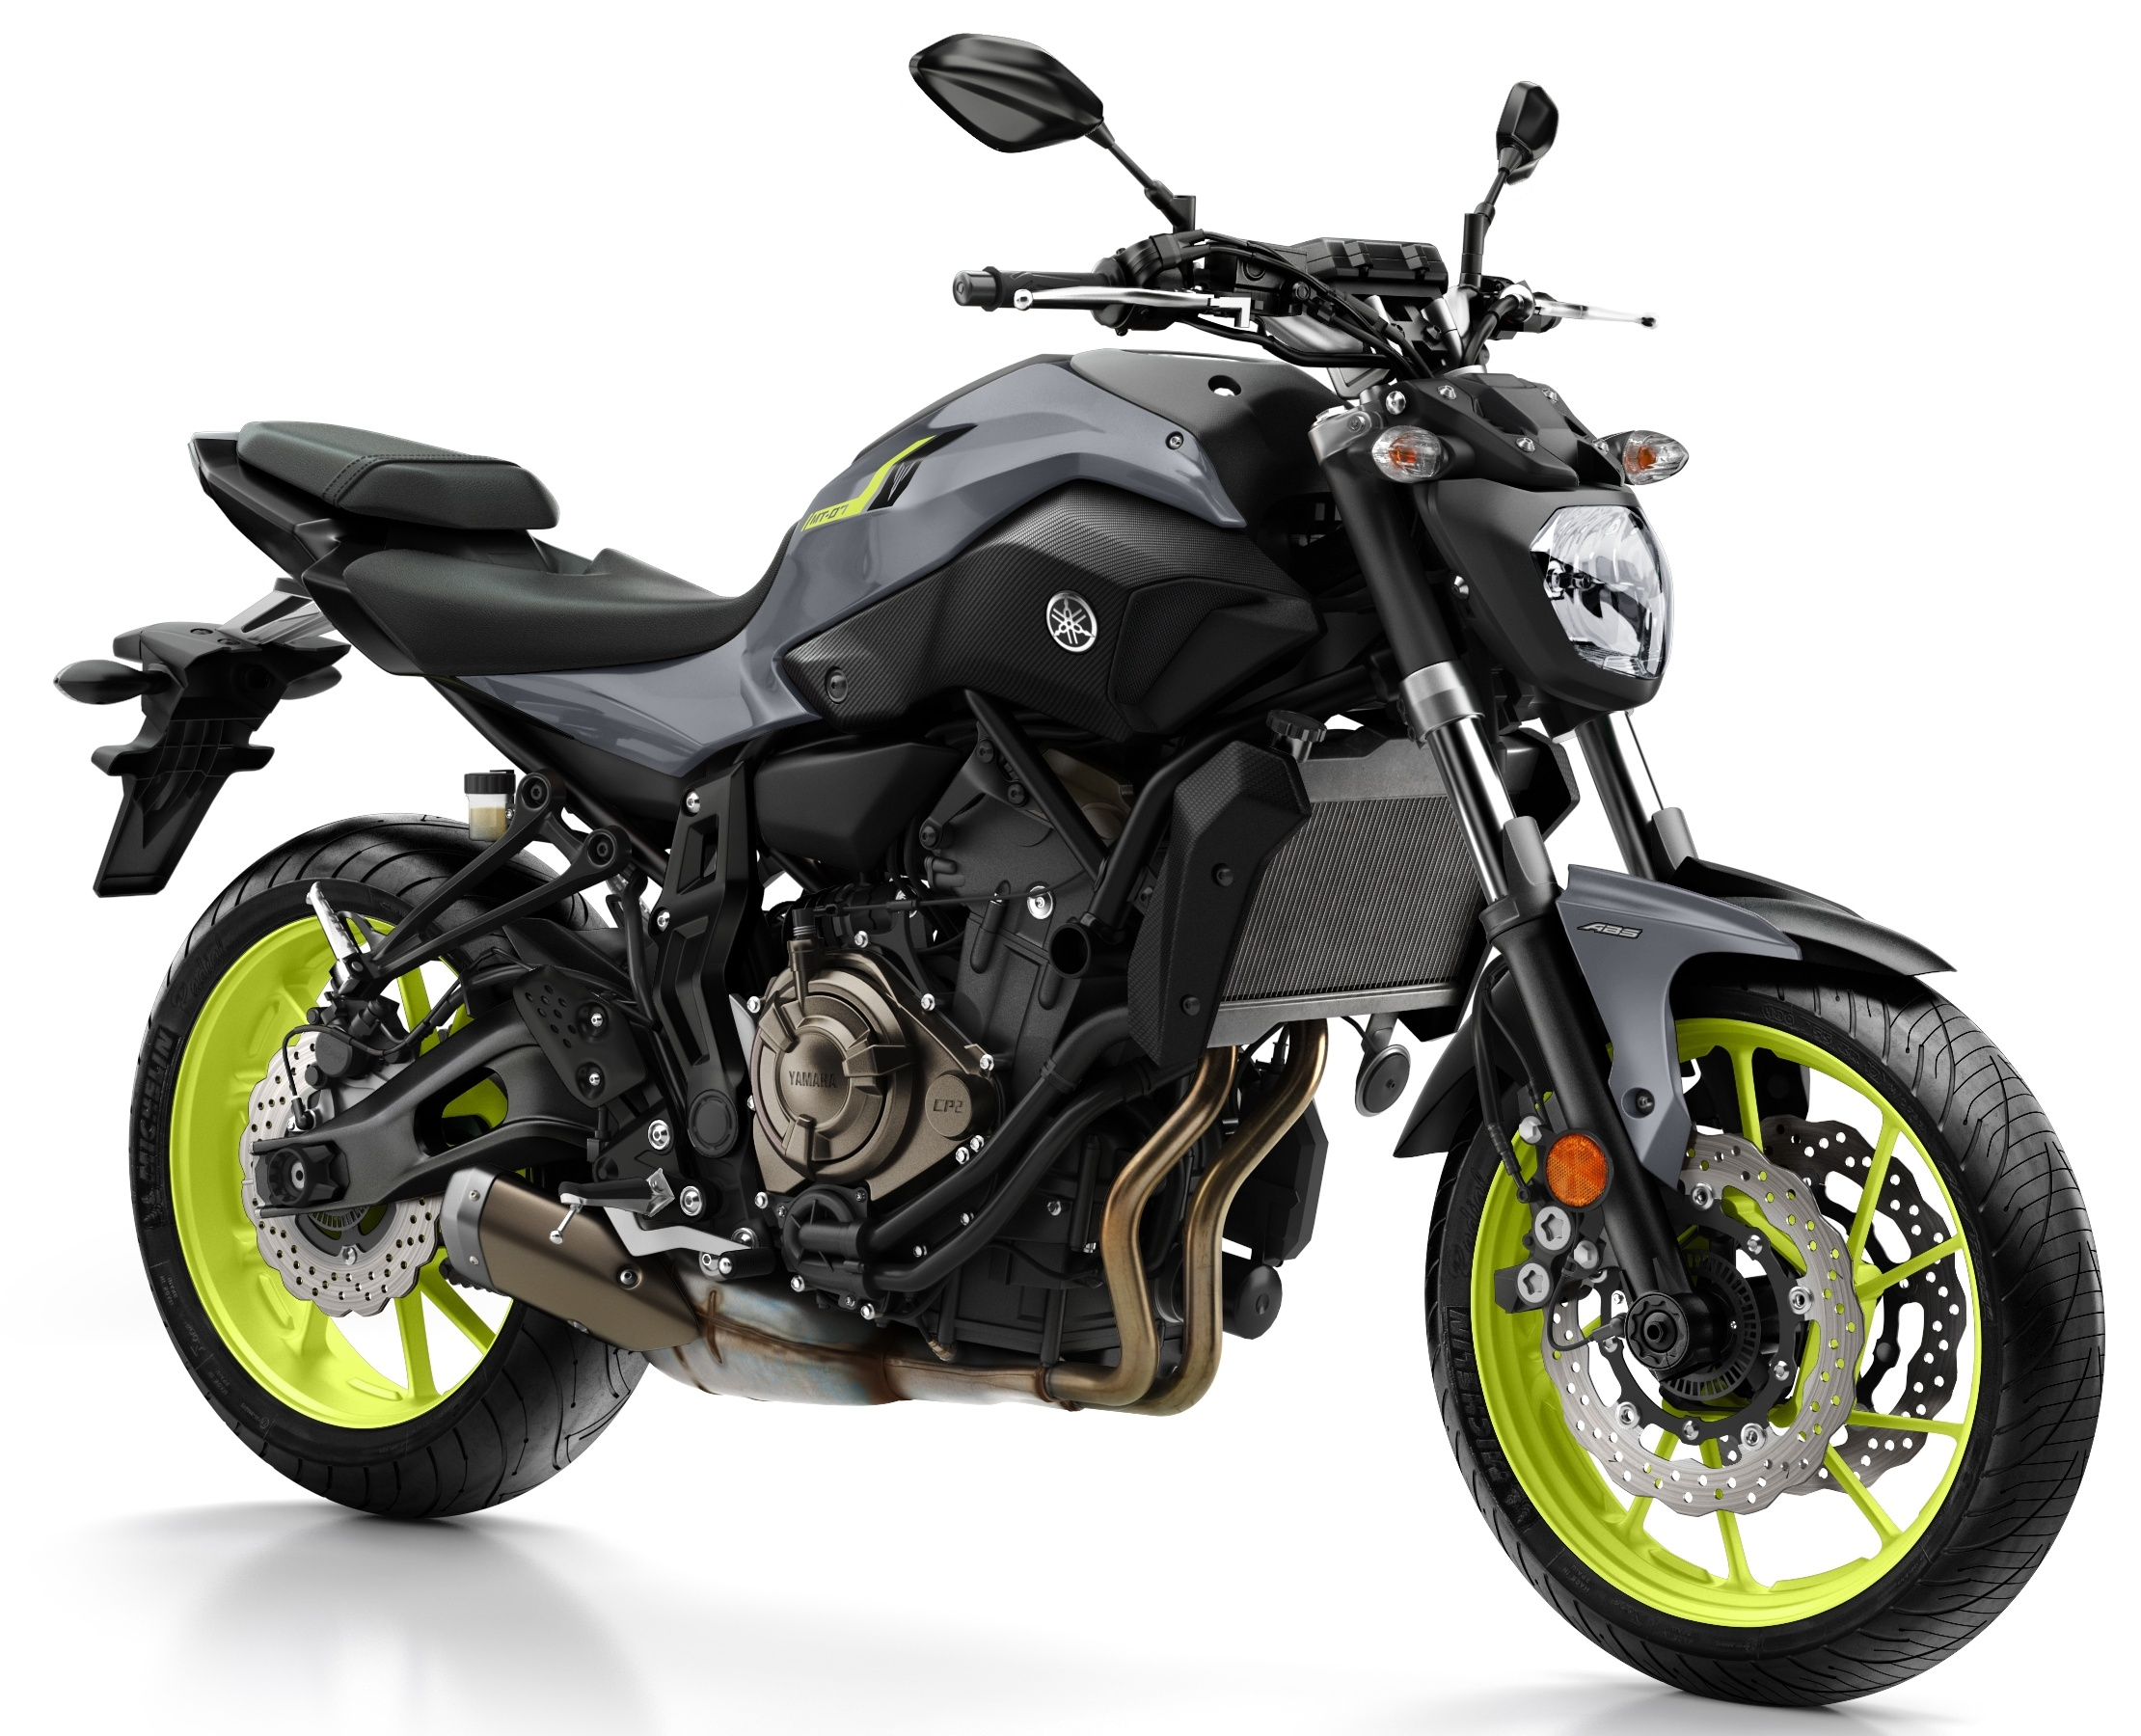 2017 Yamaha Motorcycles Get New Colour Schemes Image 556198